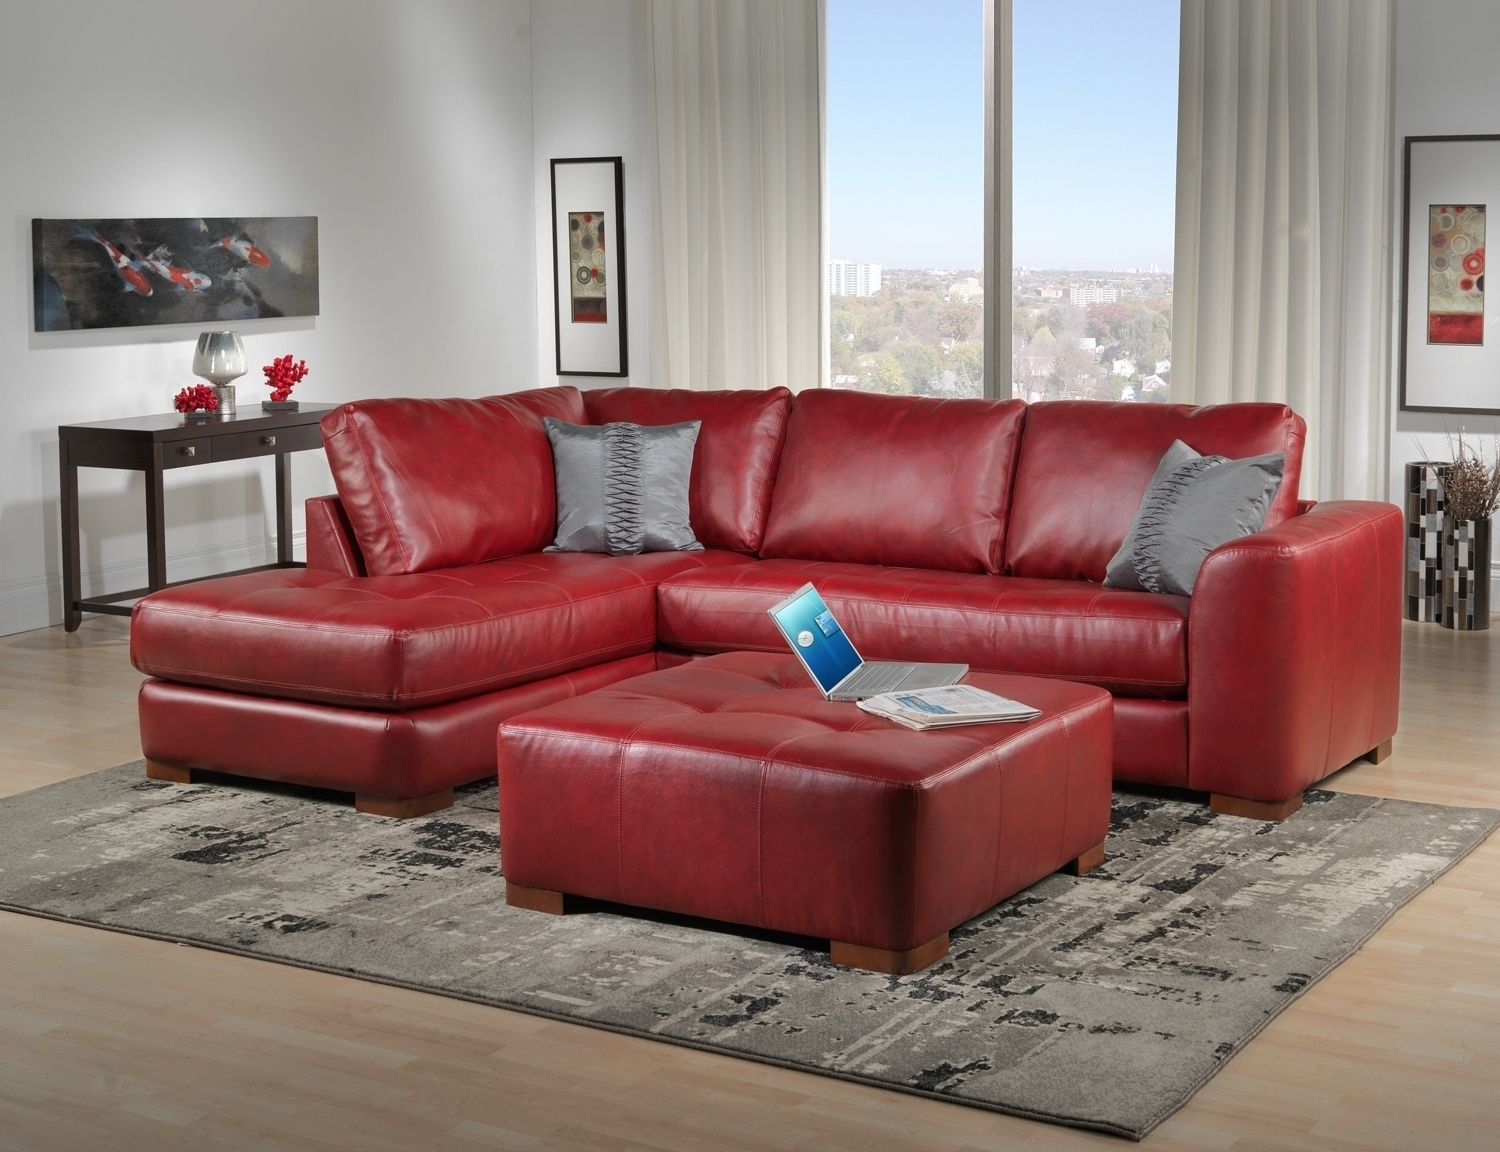 Living Room Ideas With Favorite Red Leather Couches For Living Room (View 4 of 15)